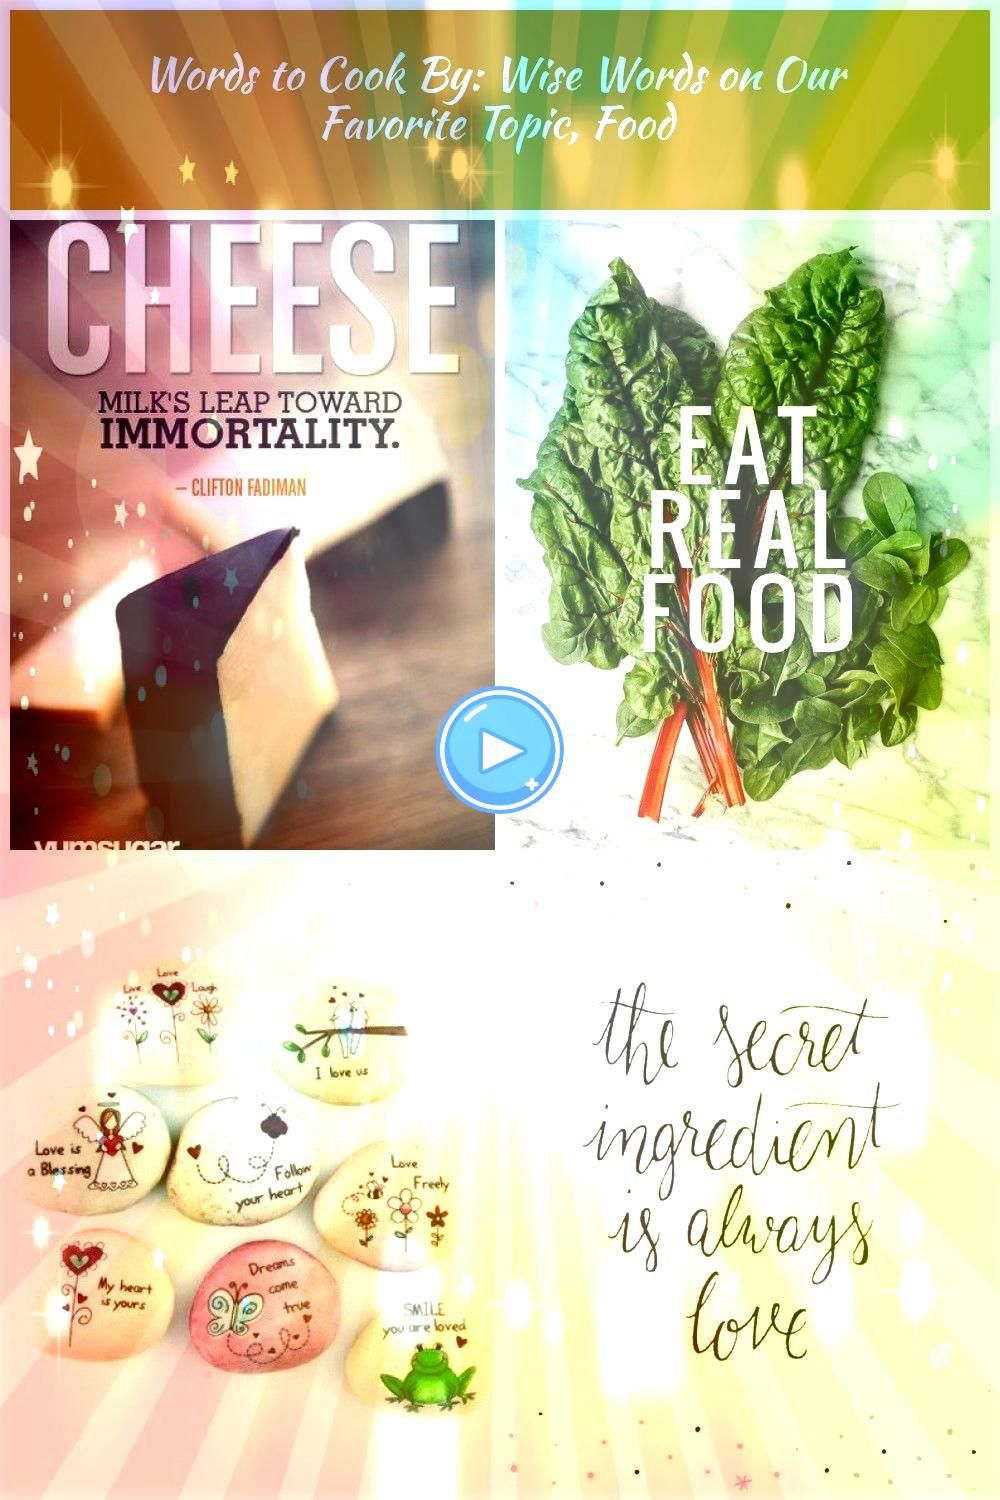 doesnt love cheese  Shake on the taste of cheese with Molly McButter Cheese Flavor only 5 calories per serving  food quotes Words to Cook By Wise Words on Our Favorite To...